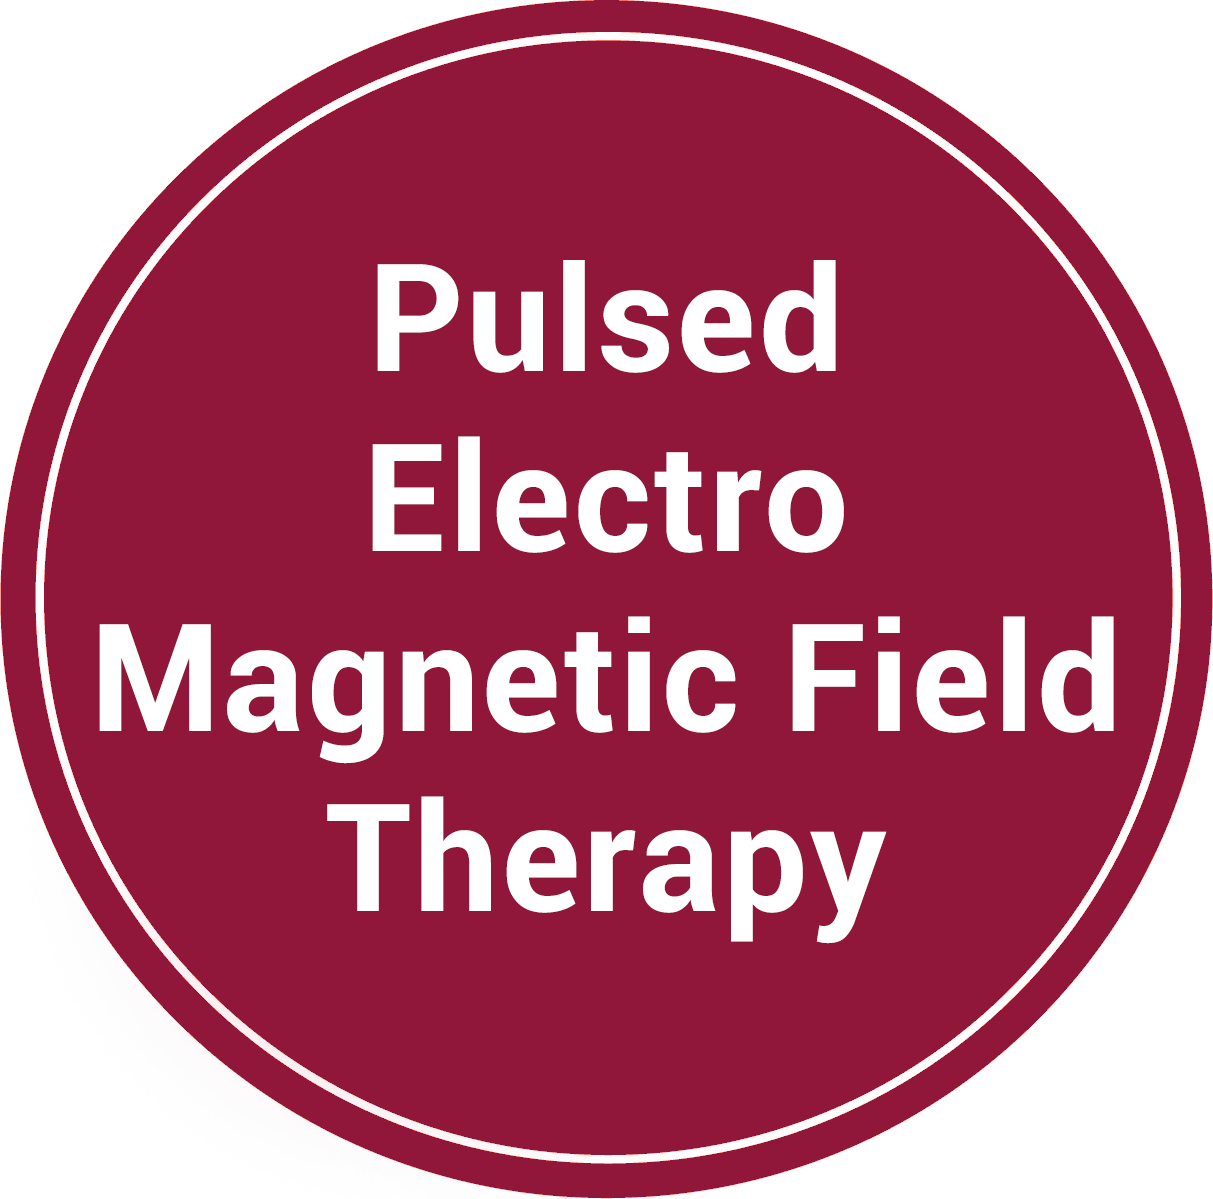 Pulsed Electro Magnetic Field Therapy